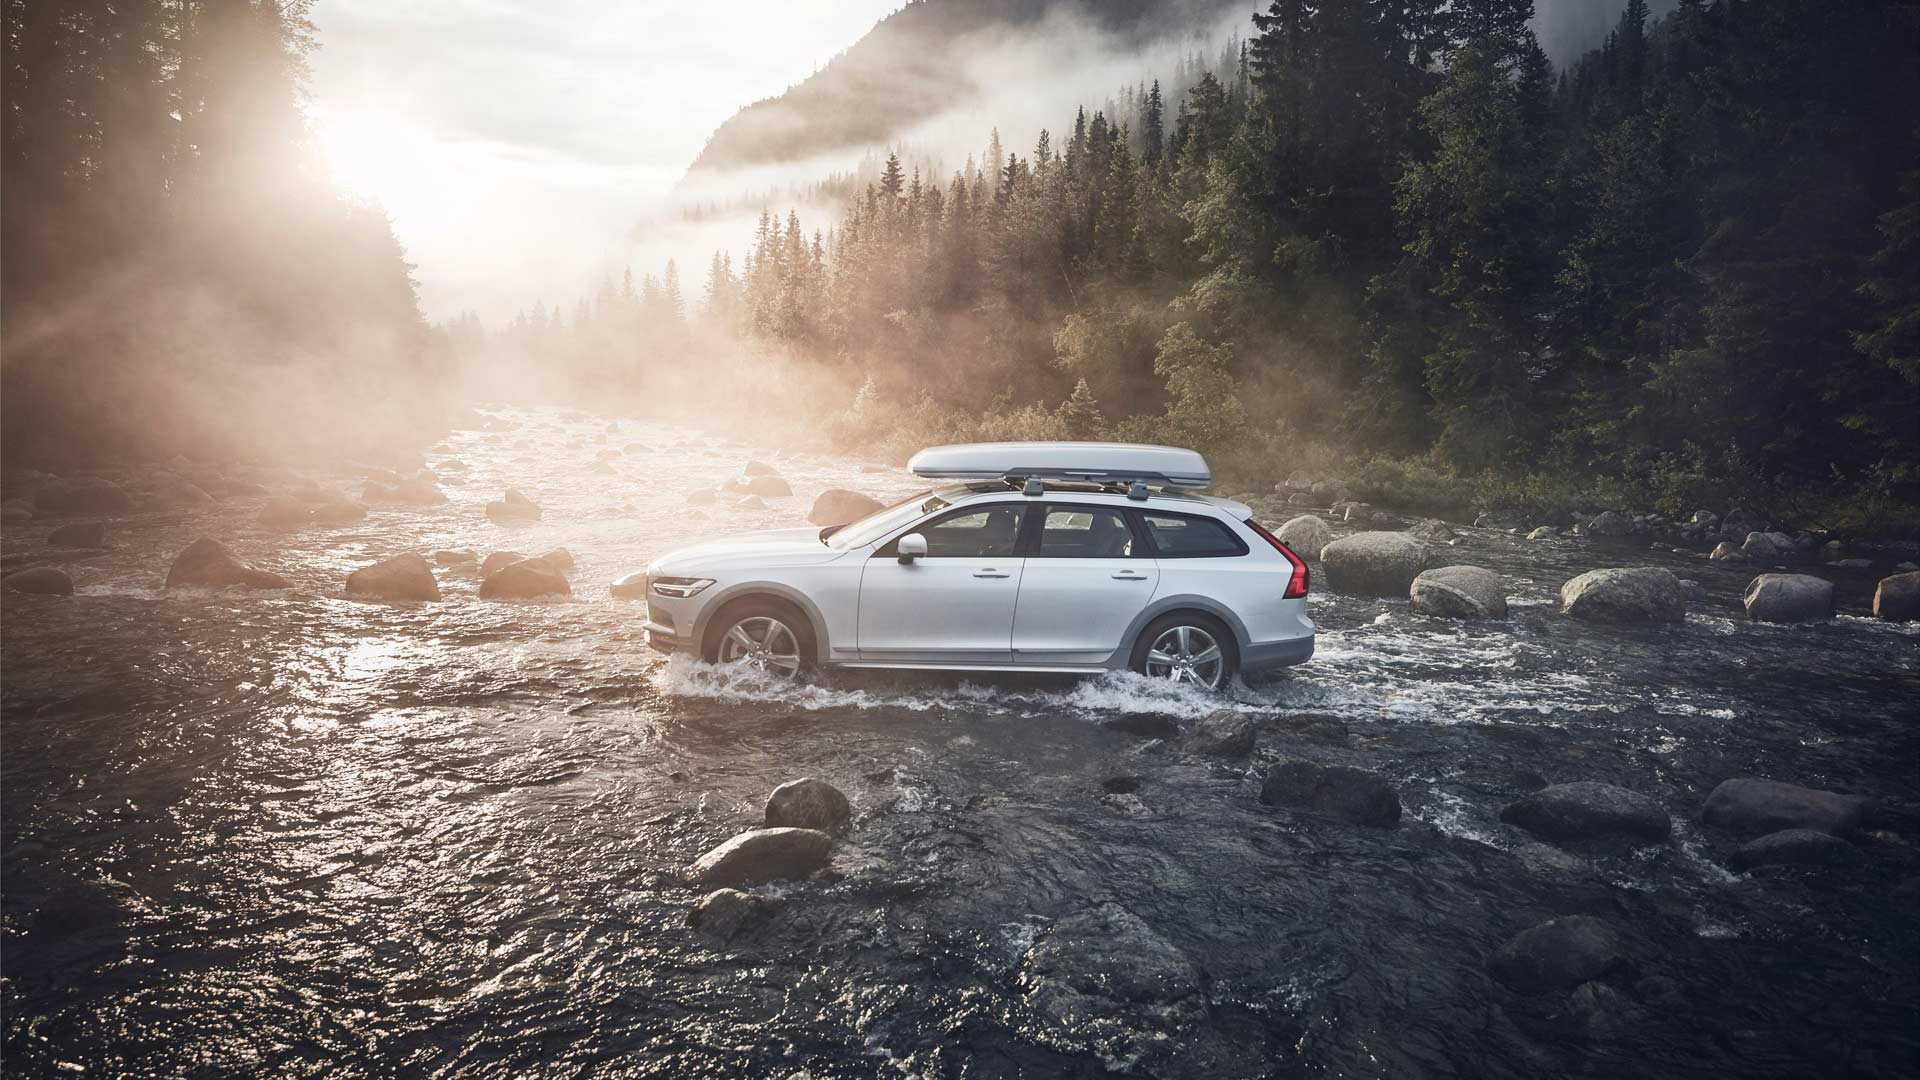 2017-18-Volvo-Ocean-Race-V90-Cross-Country